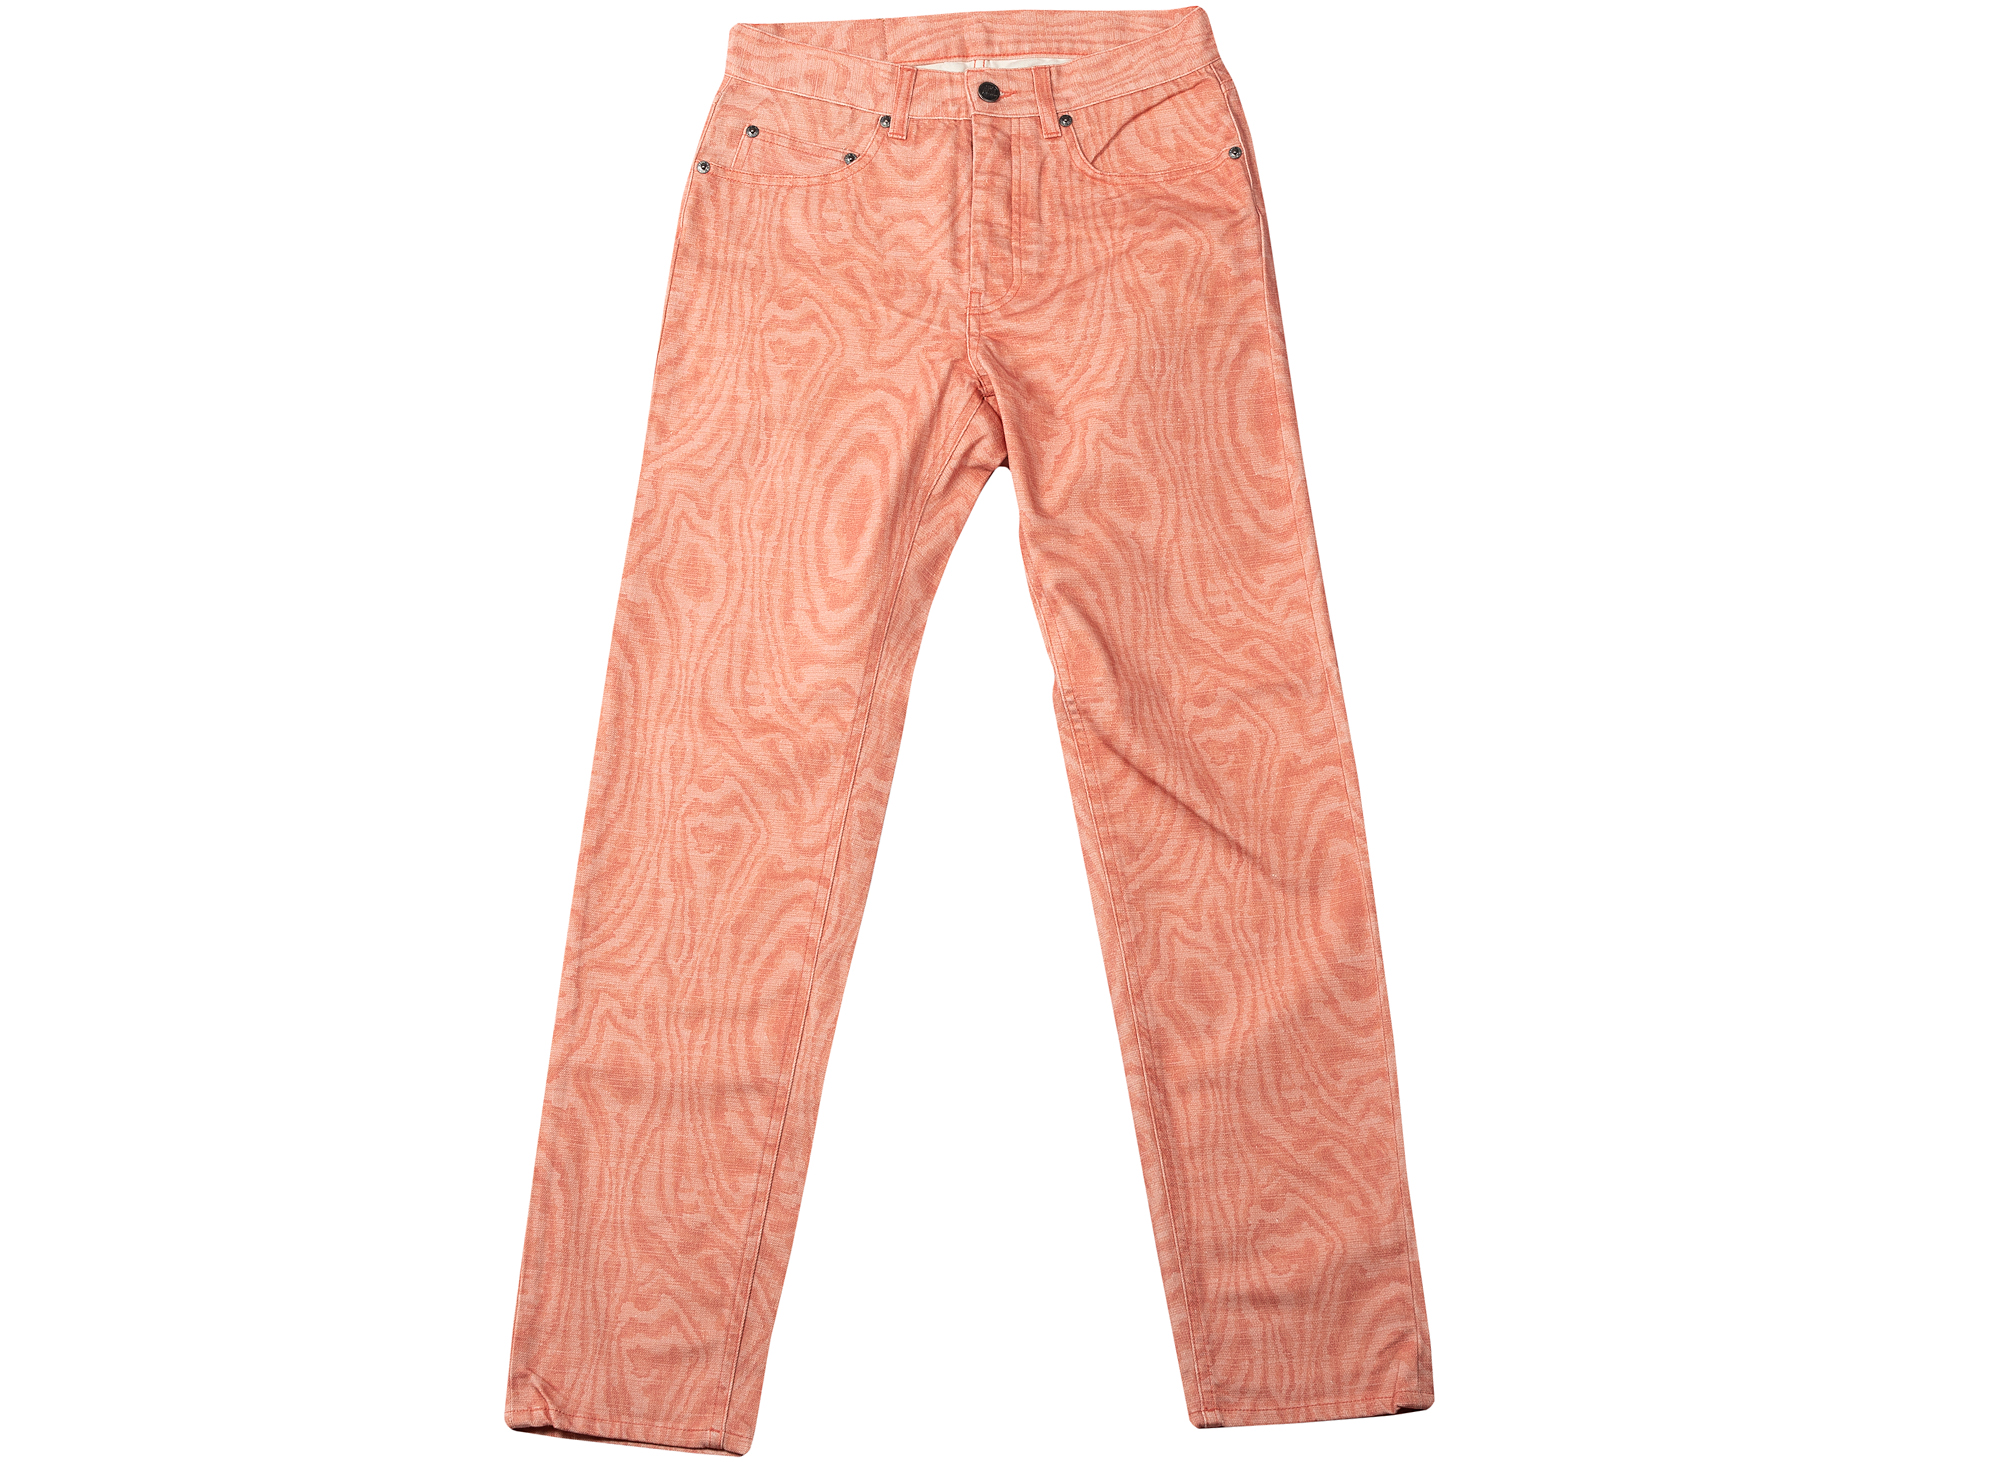 Napa by Martine Rose Hawker Print Pants